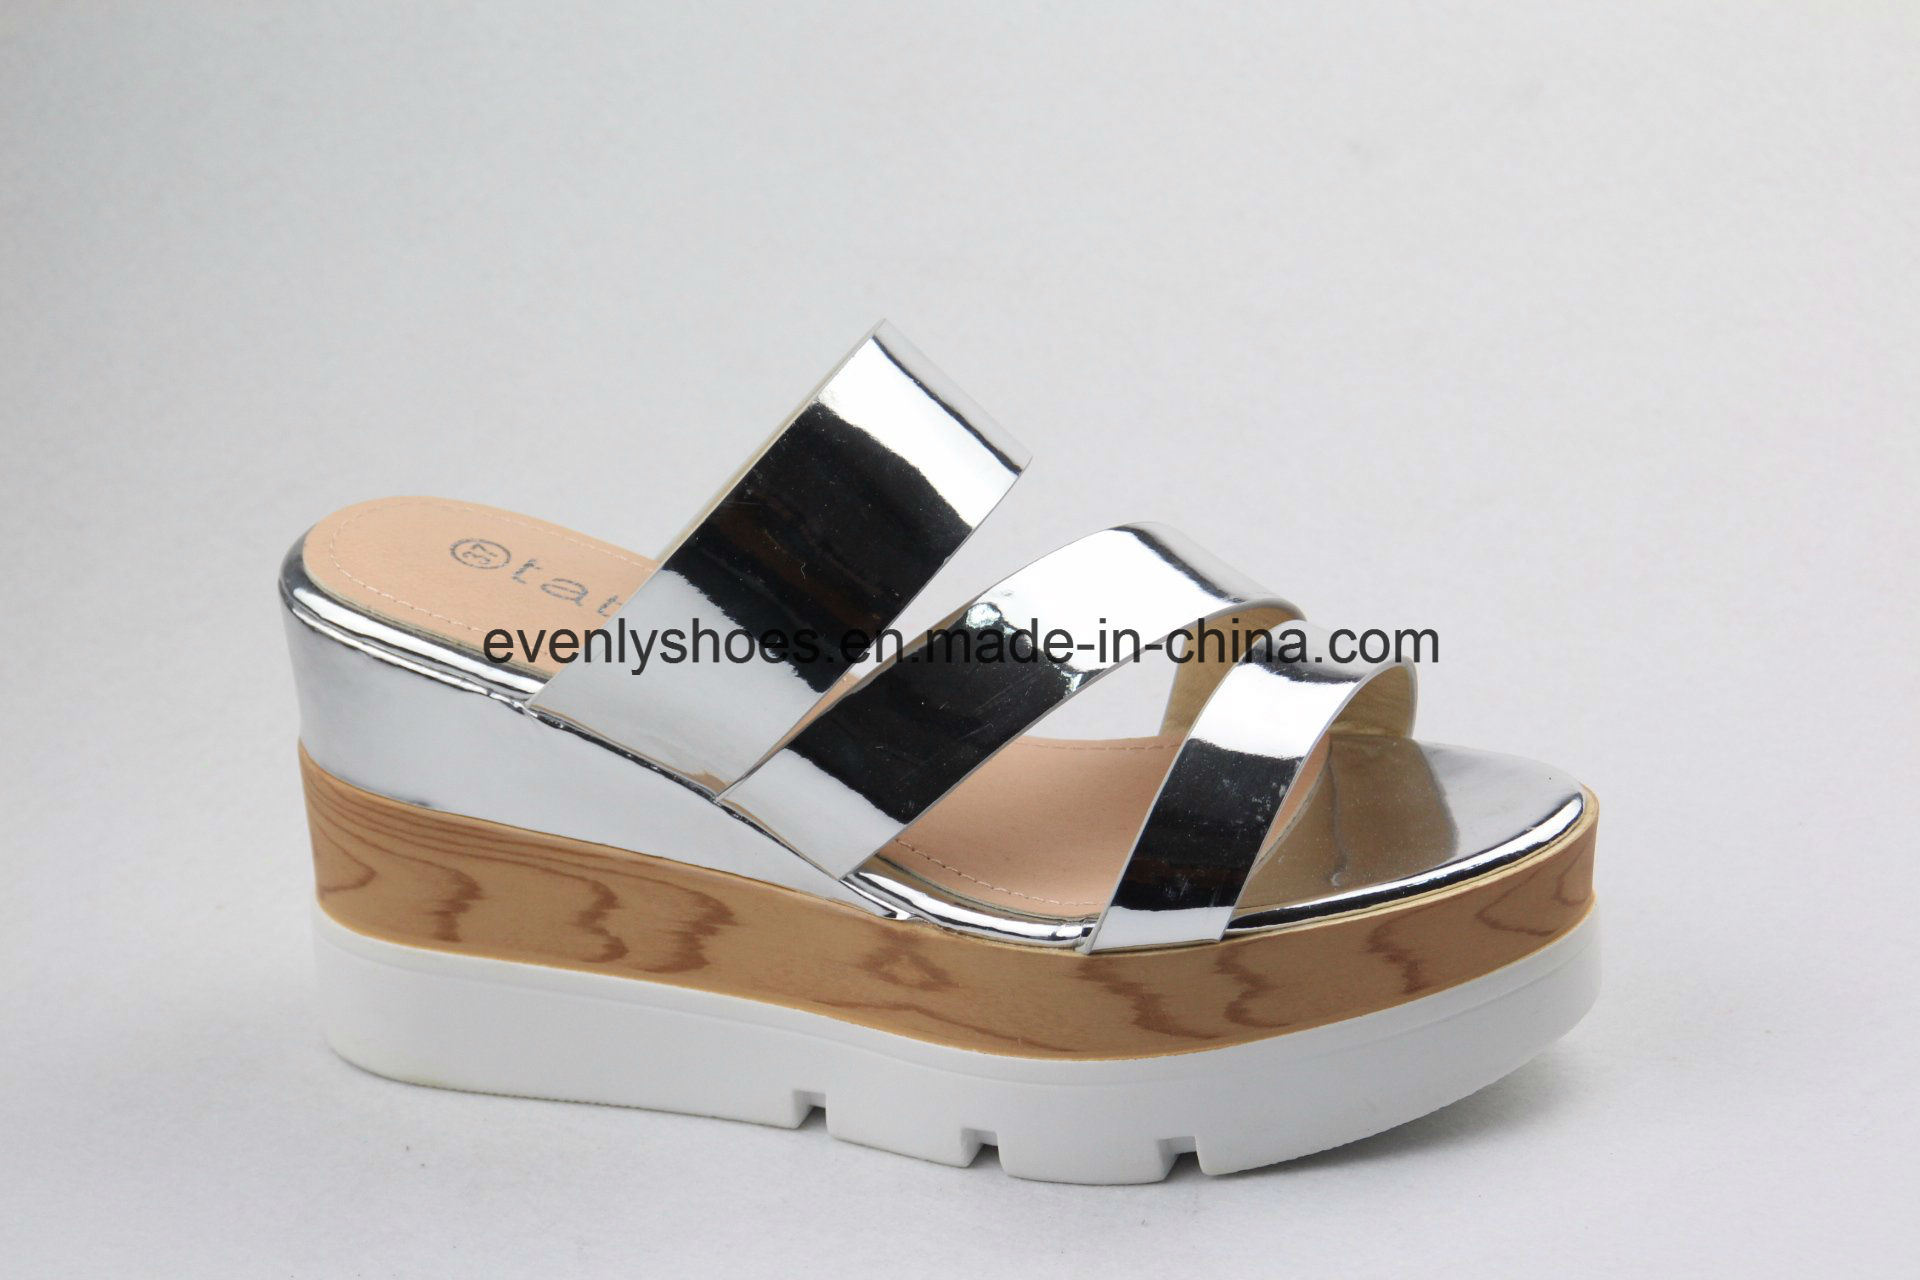 New Fashion Lady Sandal Women Shoes with Shinning Color